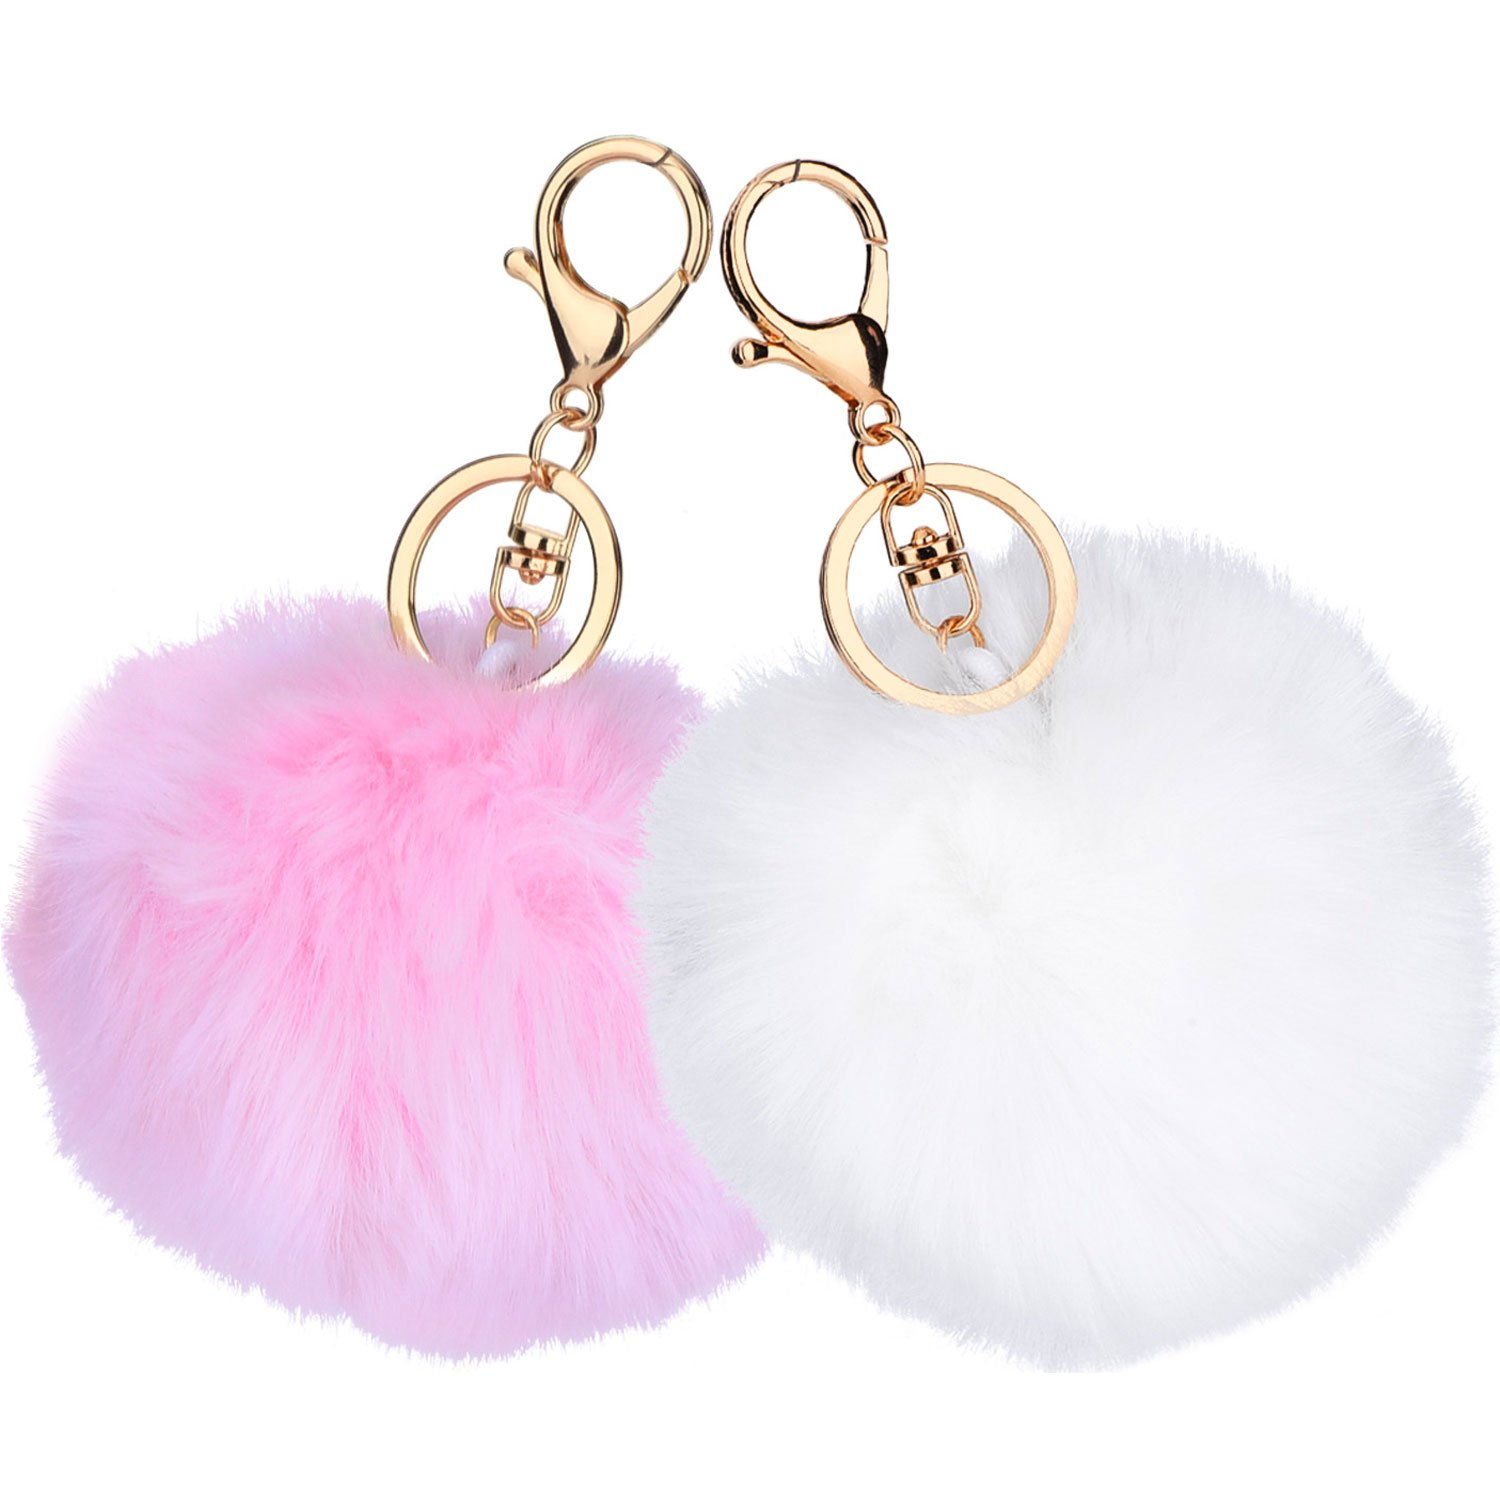 2 Pieces Pom Pom Keyring Fluffy Keyring Cell Phone Charm Key Chain Balls  Bag Pendant Keychain (White and Pink)  Amazon.co.uk  Luggage 5b7a9a2c30a4